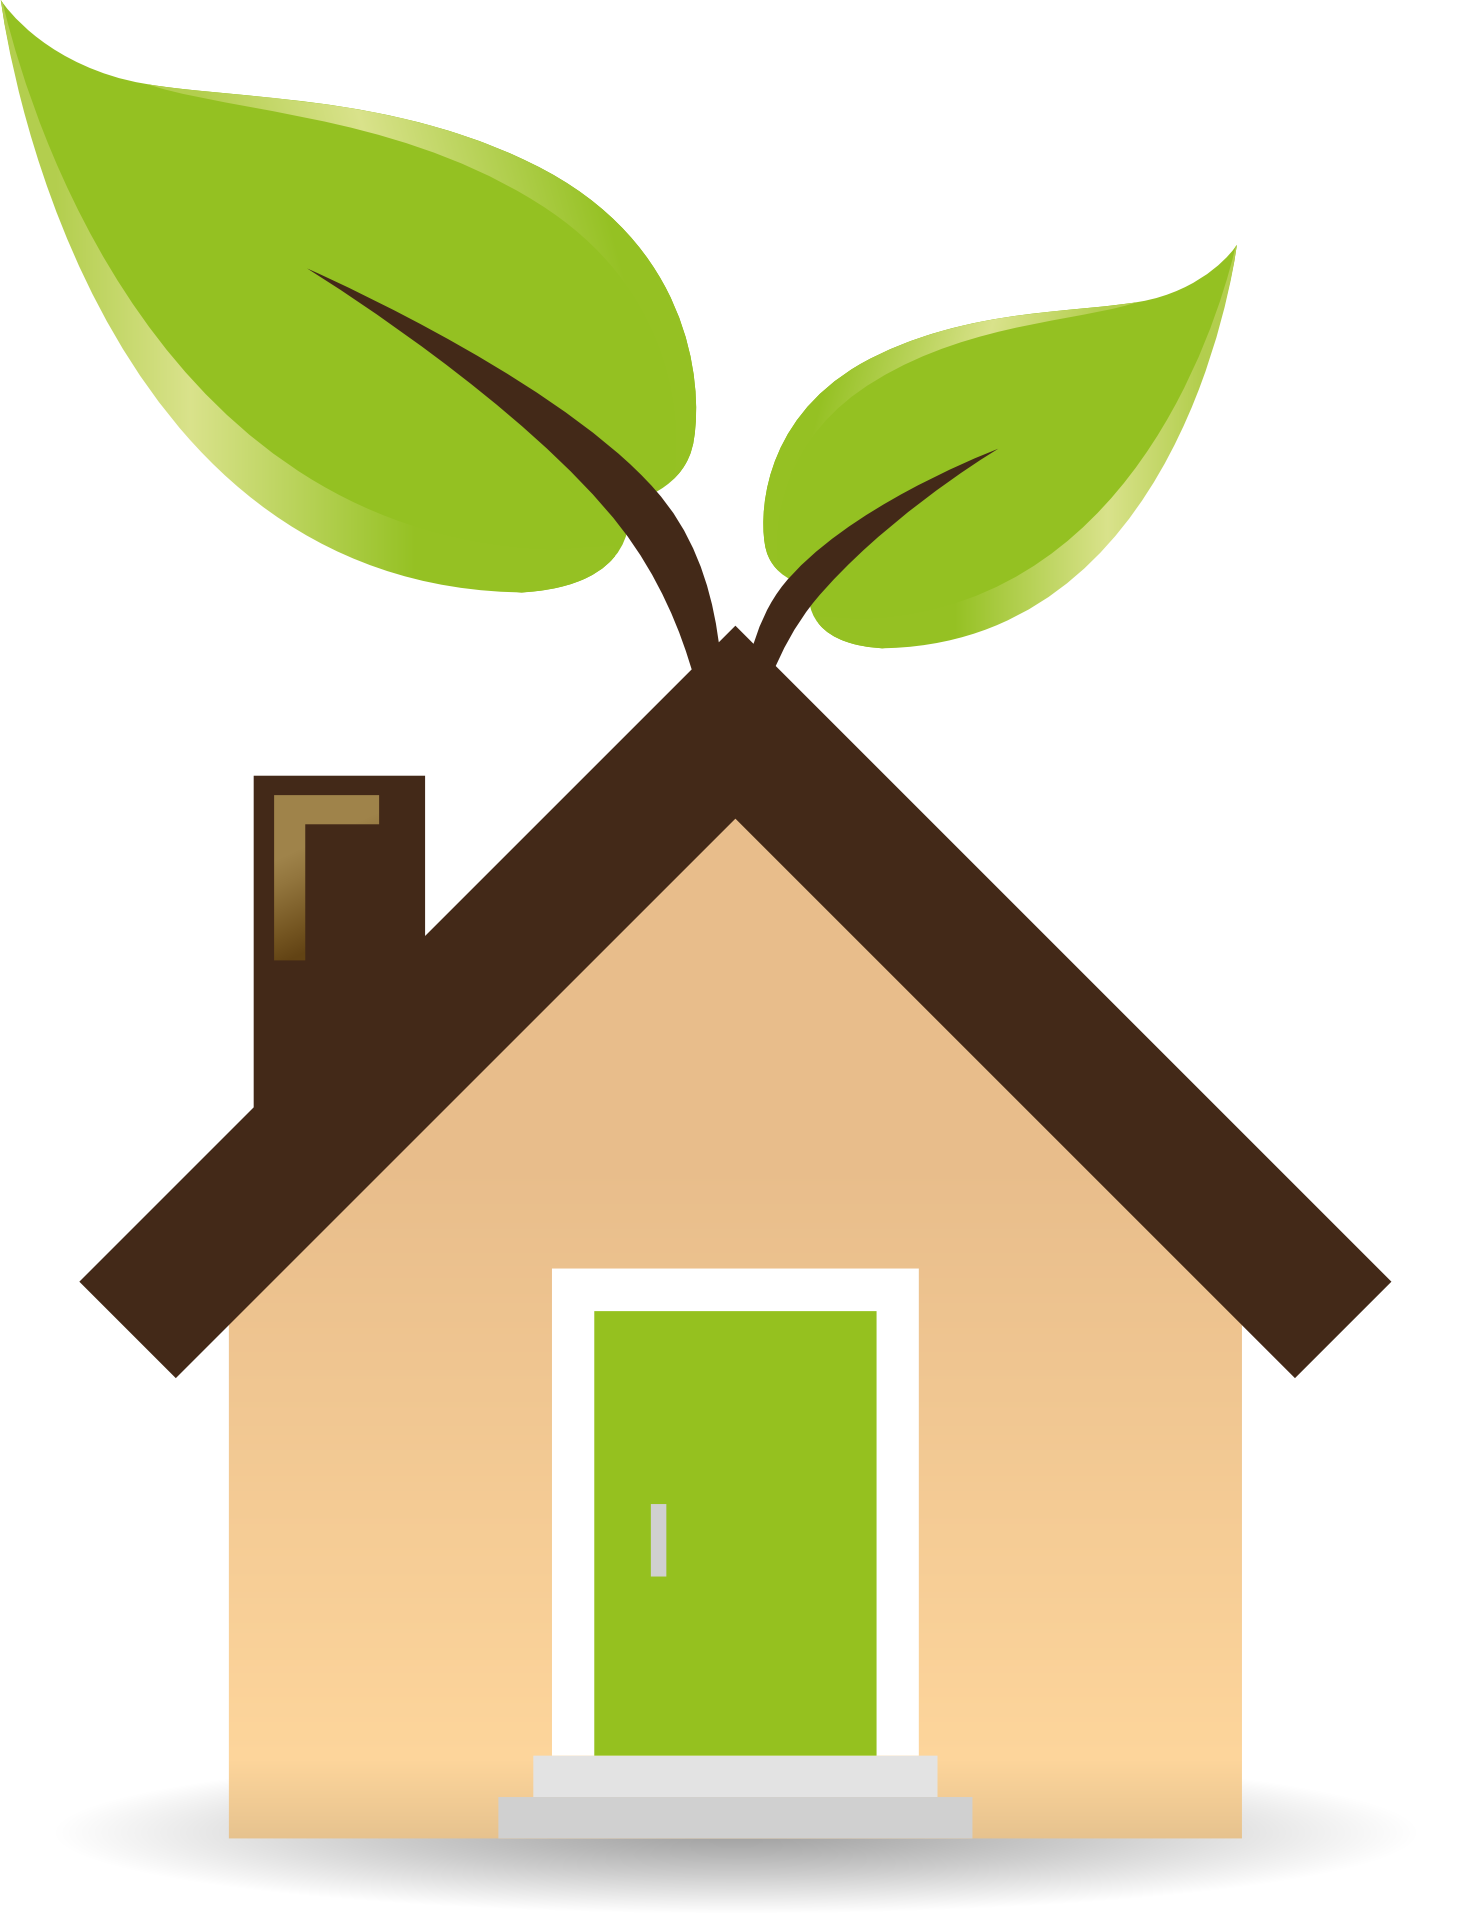 Green buildings the future. Environment clipart sustainable living